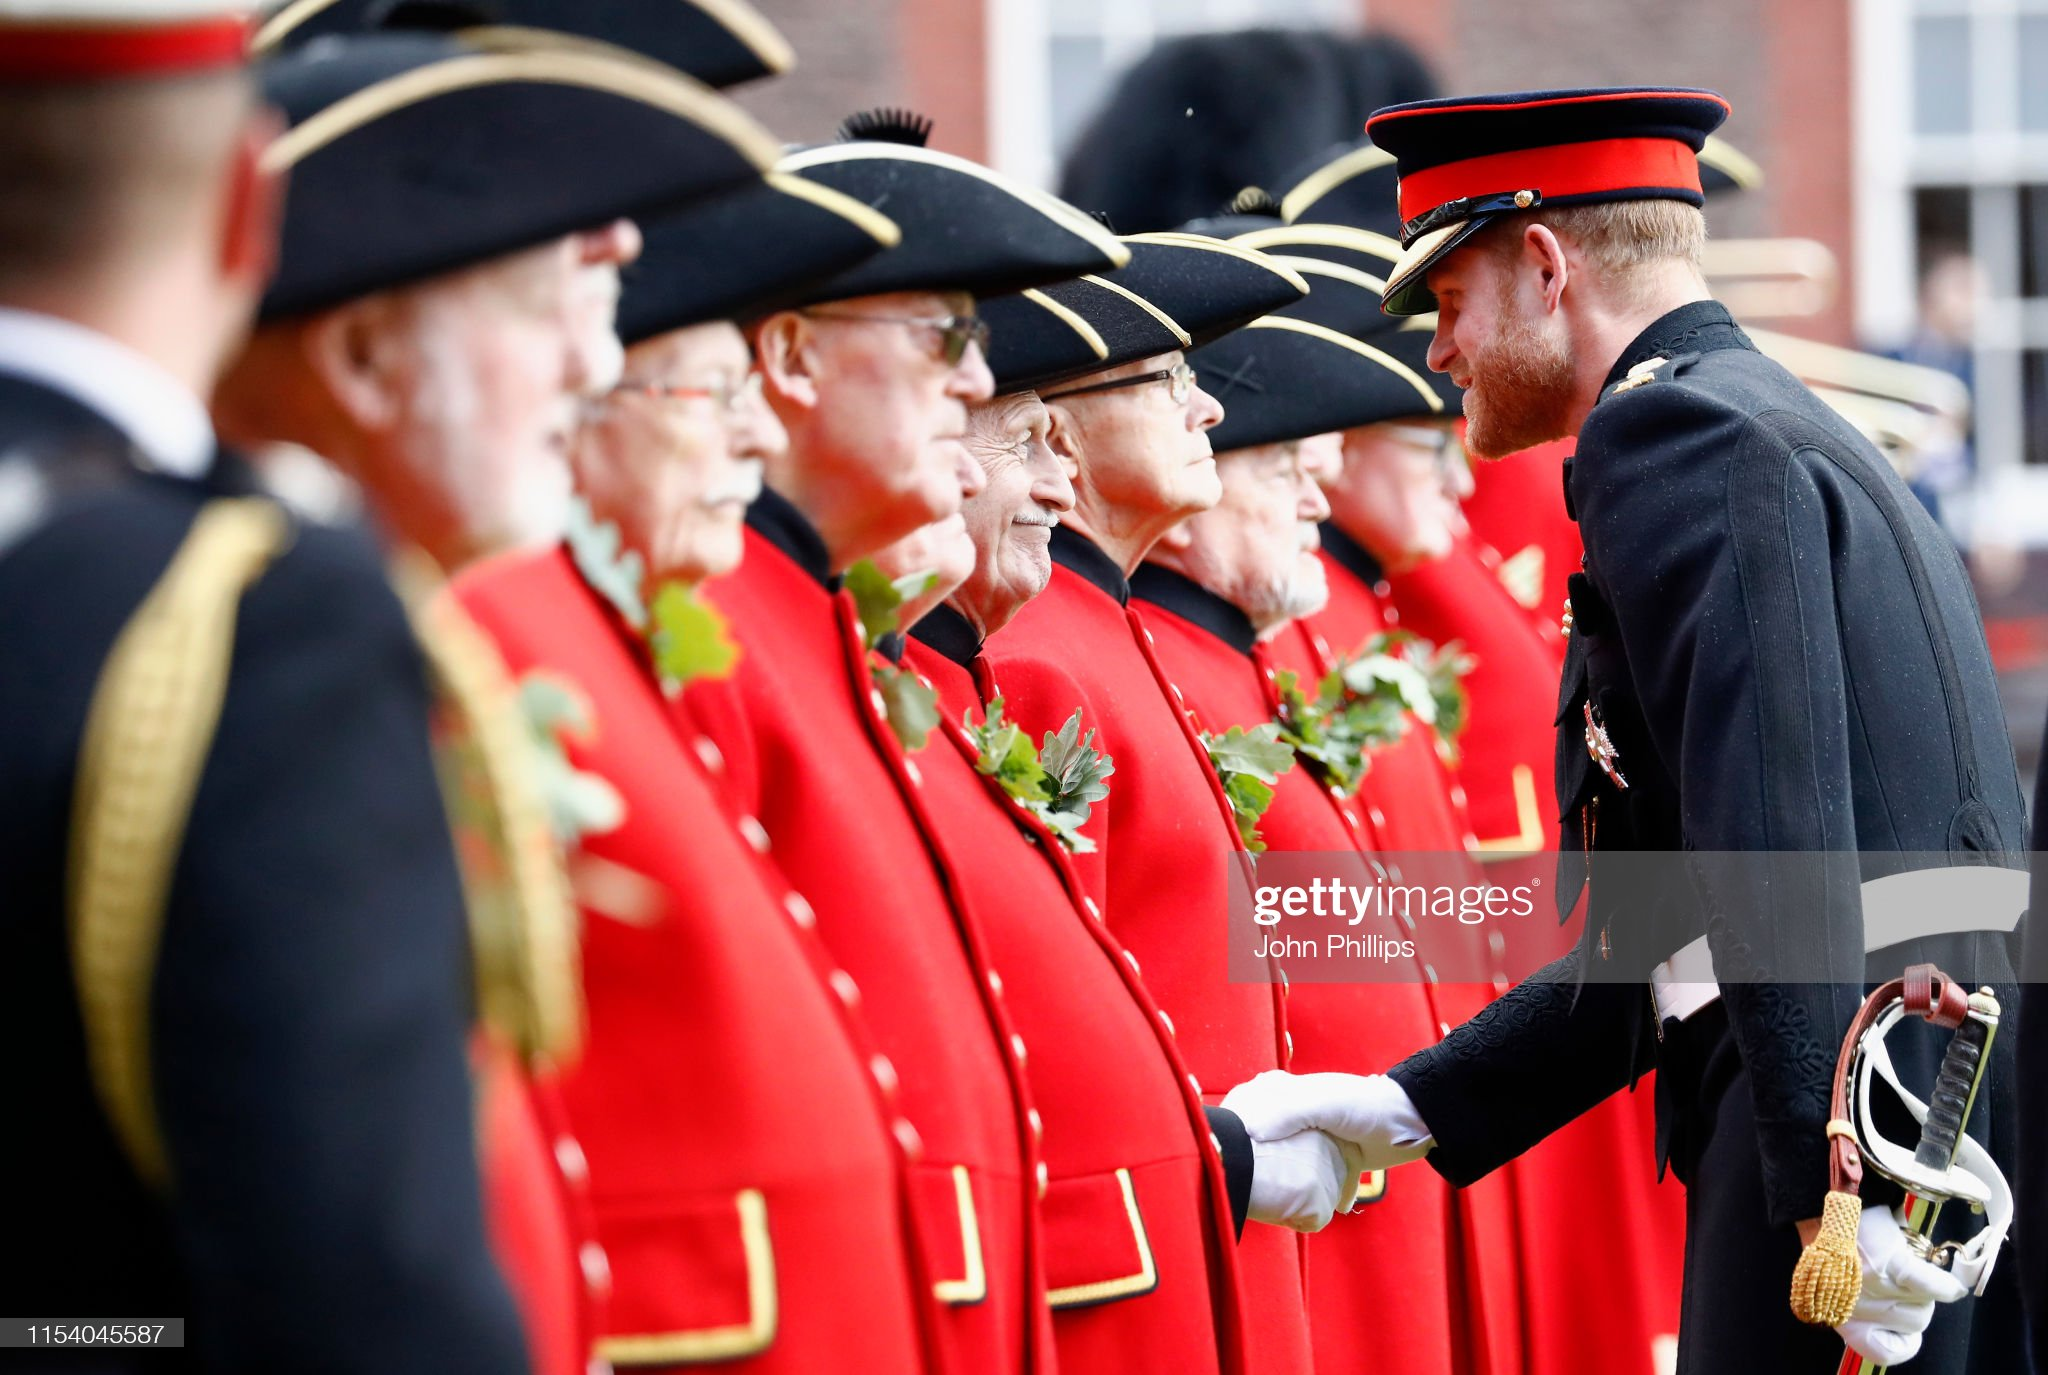 prince-harry-duke-of-sussex-meets-veterans-and-chelsea-pensioners-as-picture-id1154045587